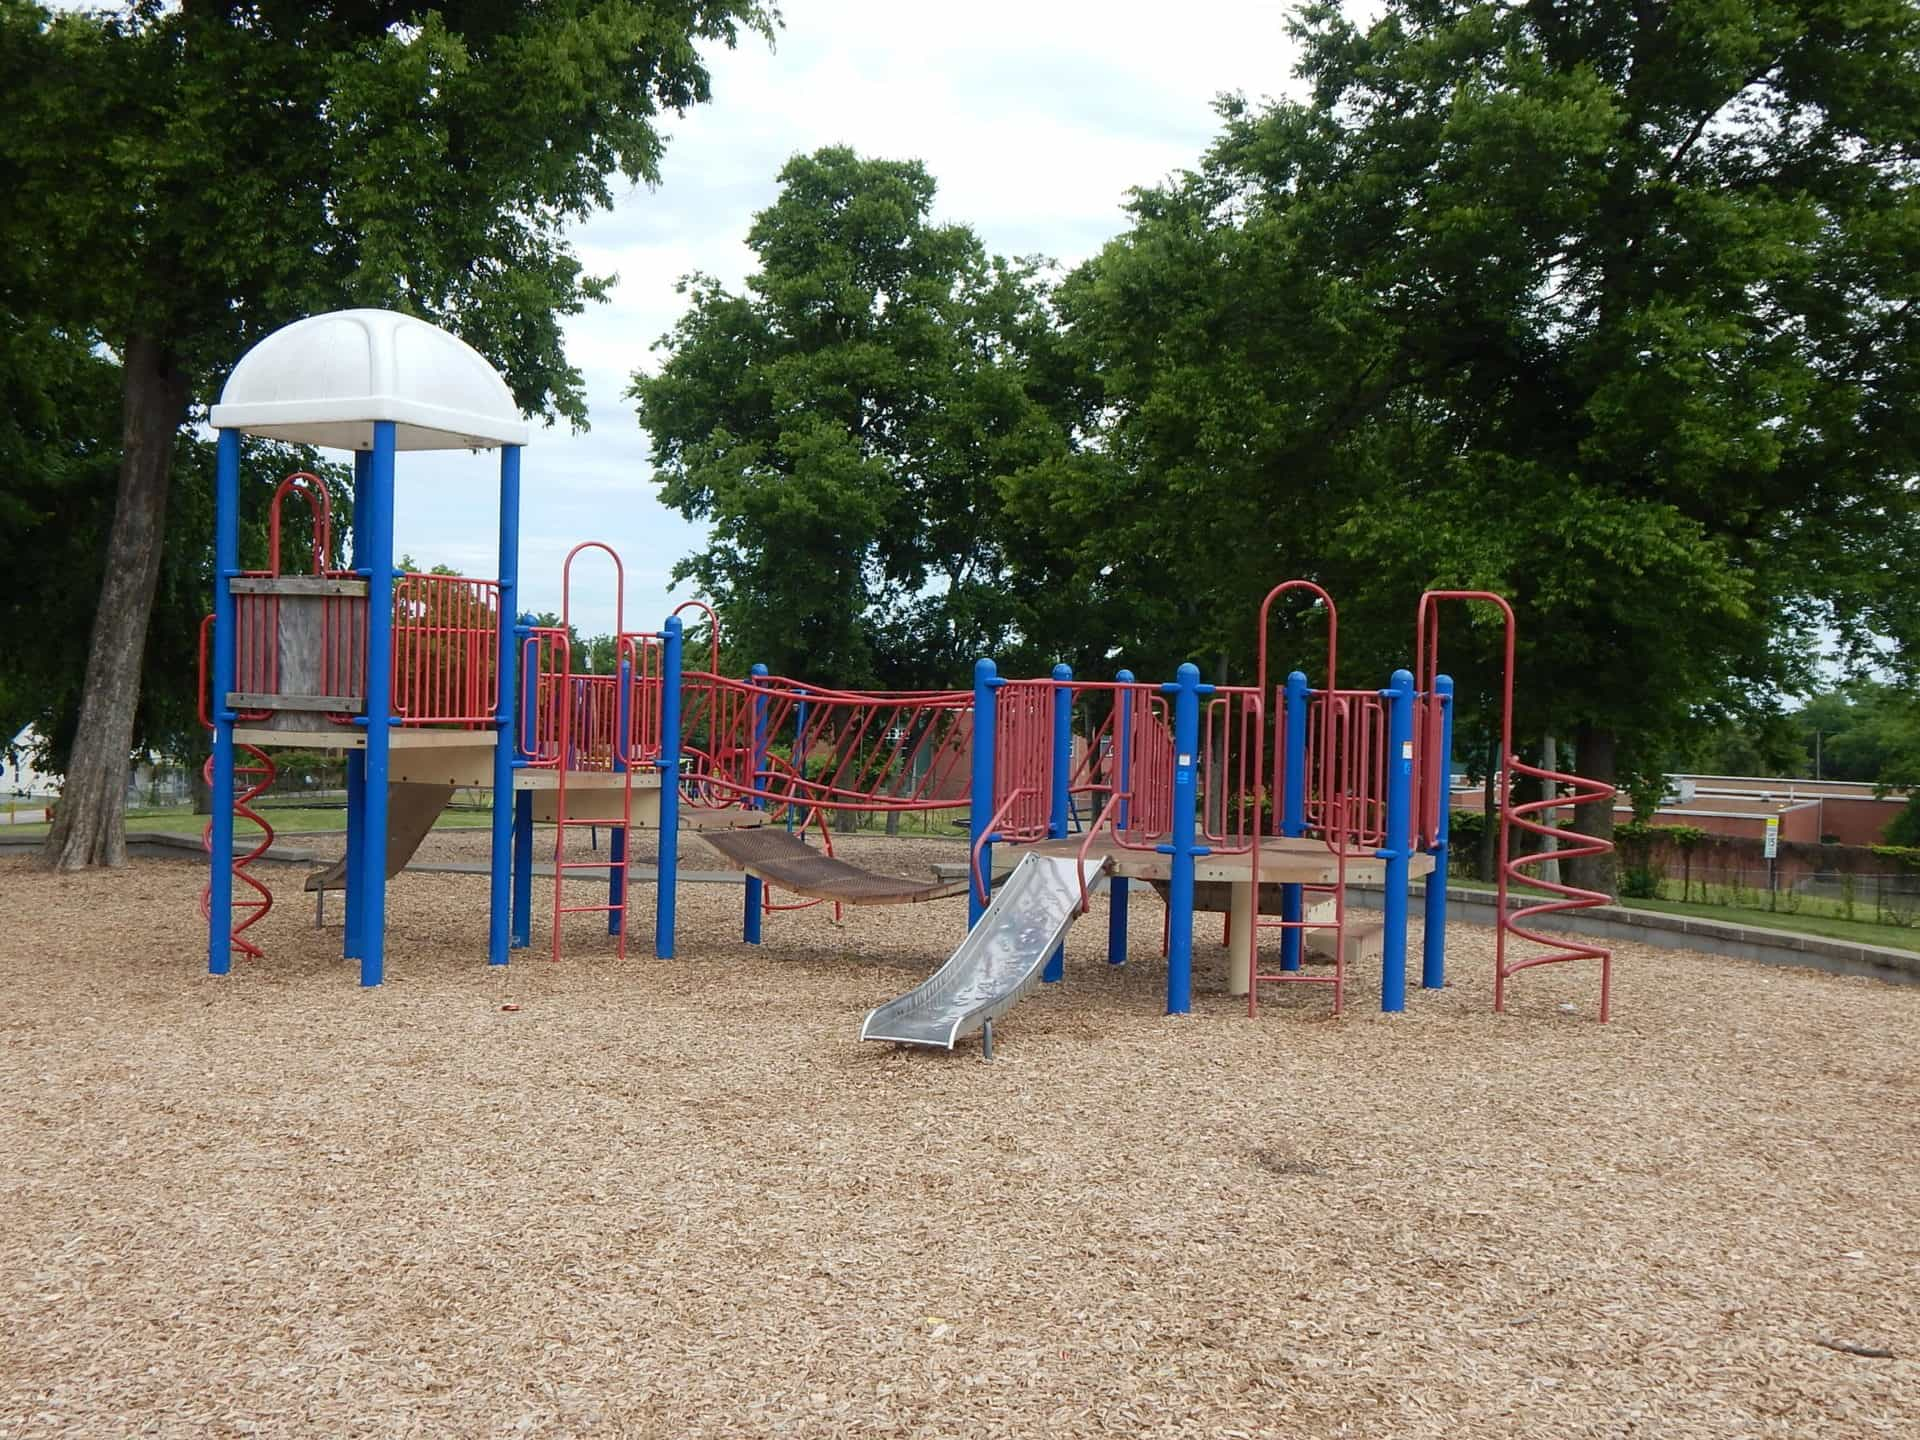 South Inglewood Park and Community Center - Playscape